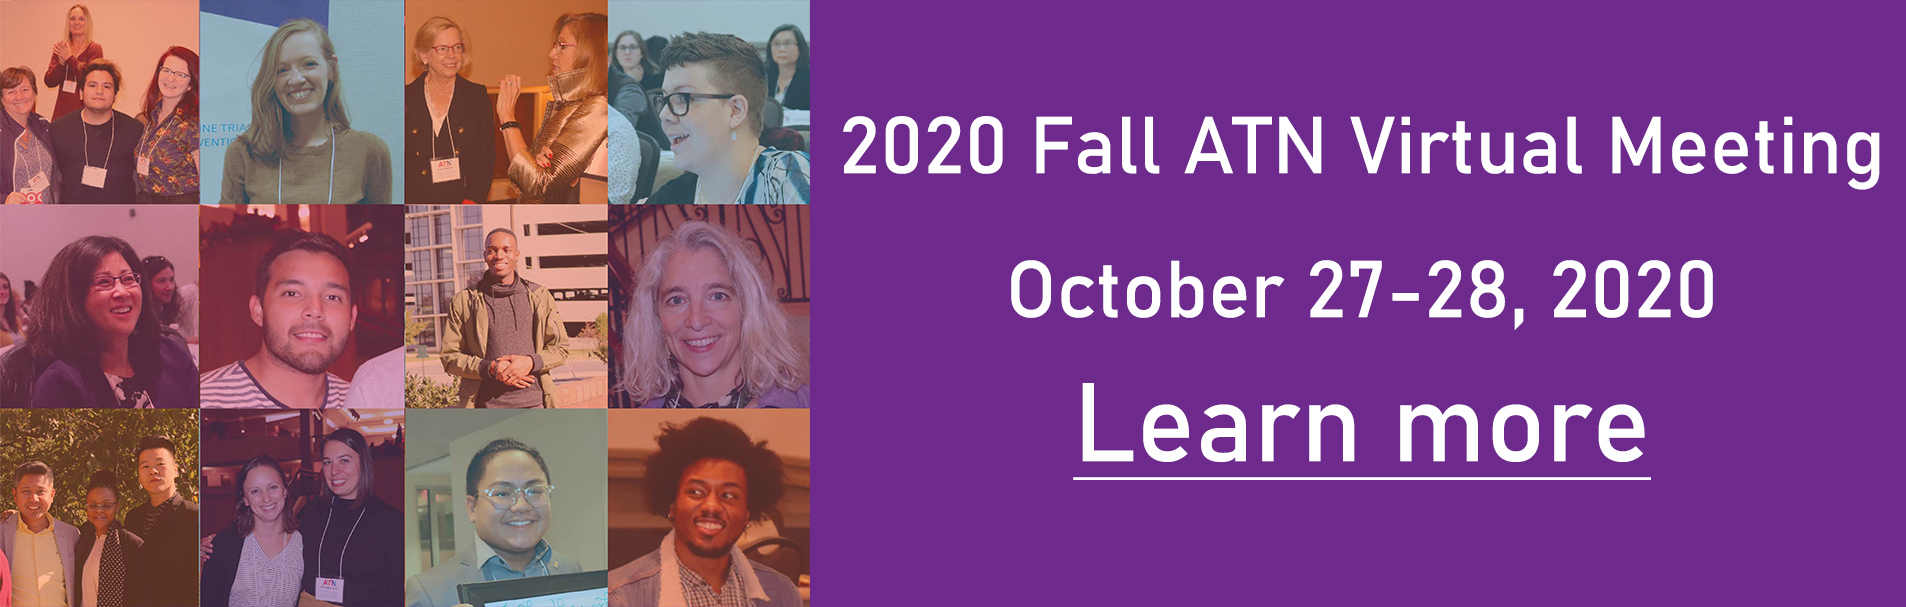 Grid of portraits from people at previous in-person meetings from other years, which has text that says: 2020 Fall ATN Virtual Meeting, October 27-28, 2020. Learn more